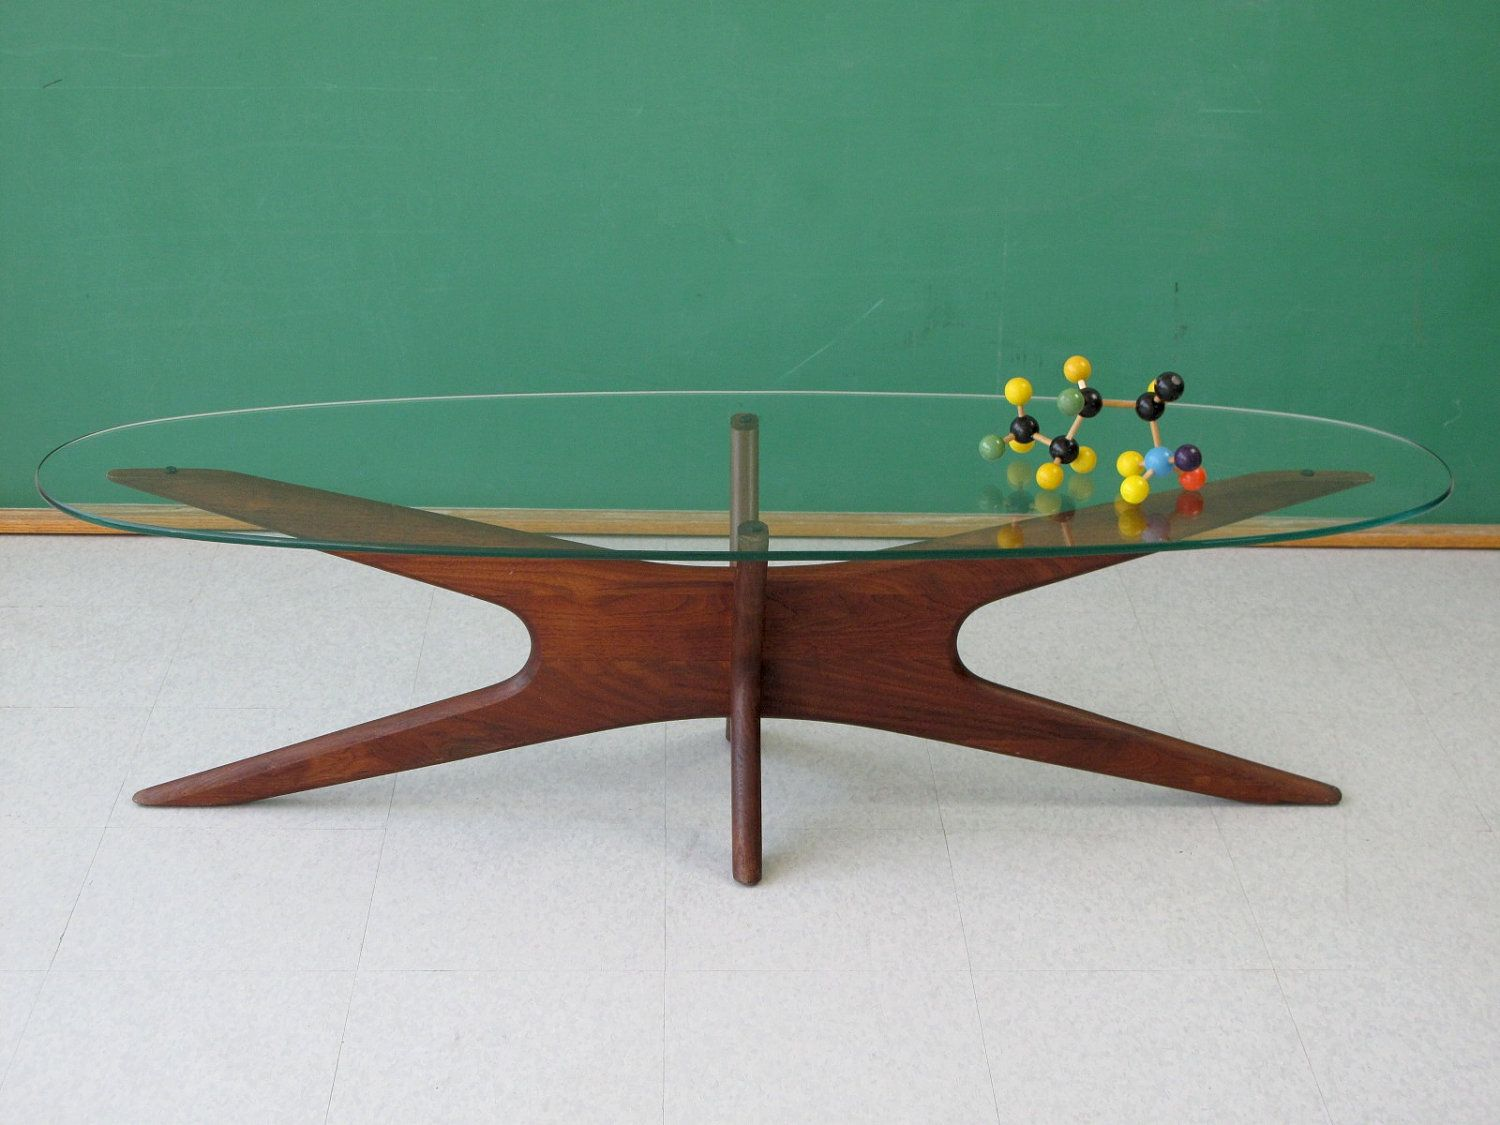 Vintage Adrian Pearsall Jacks Coffee Table For Craft Associates